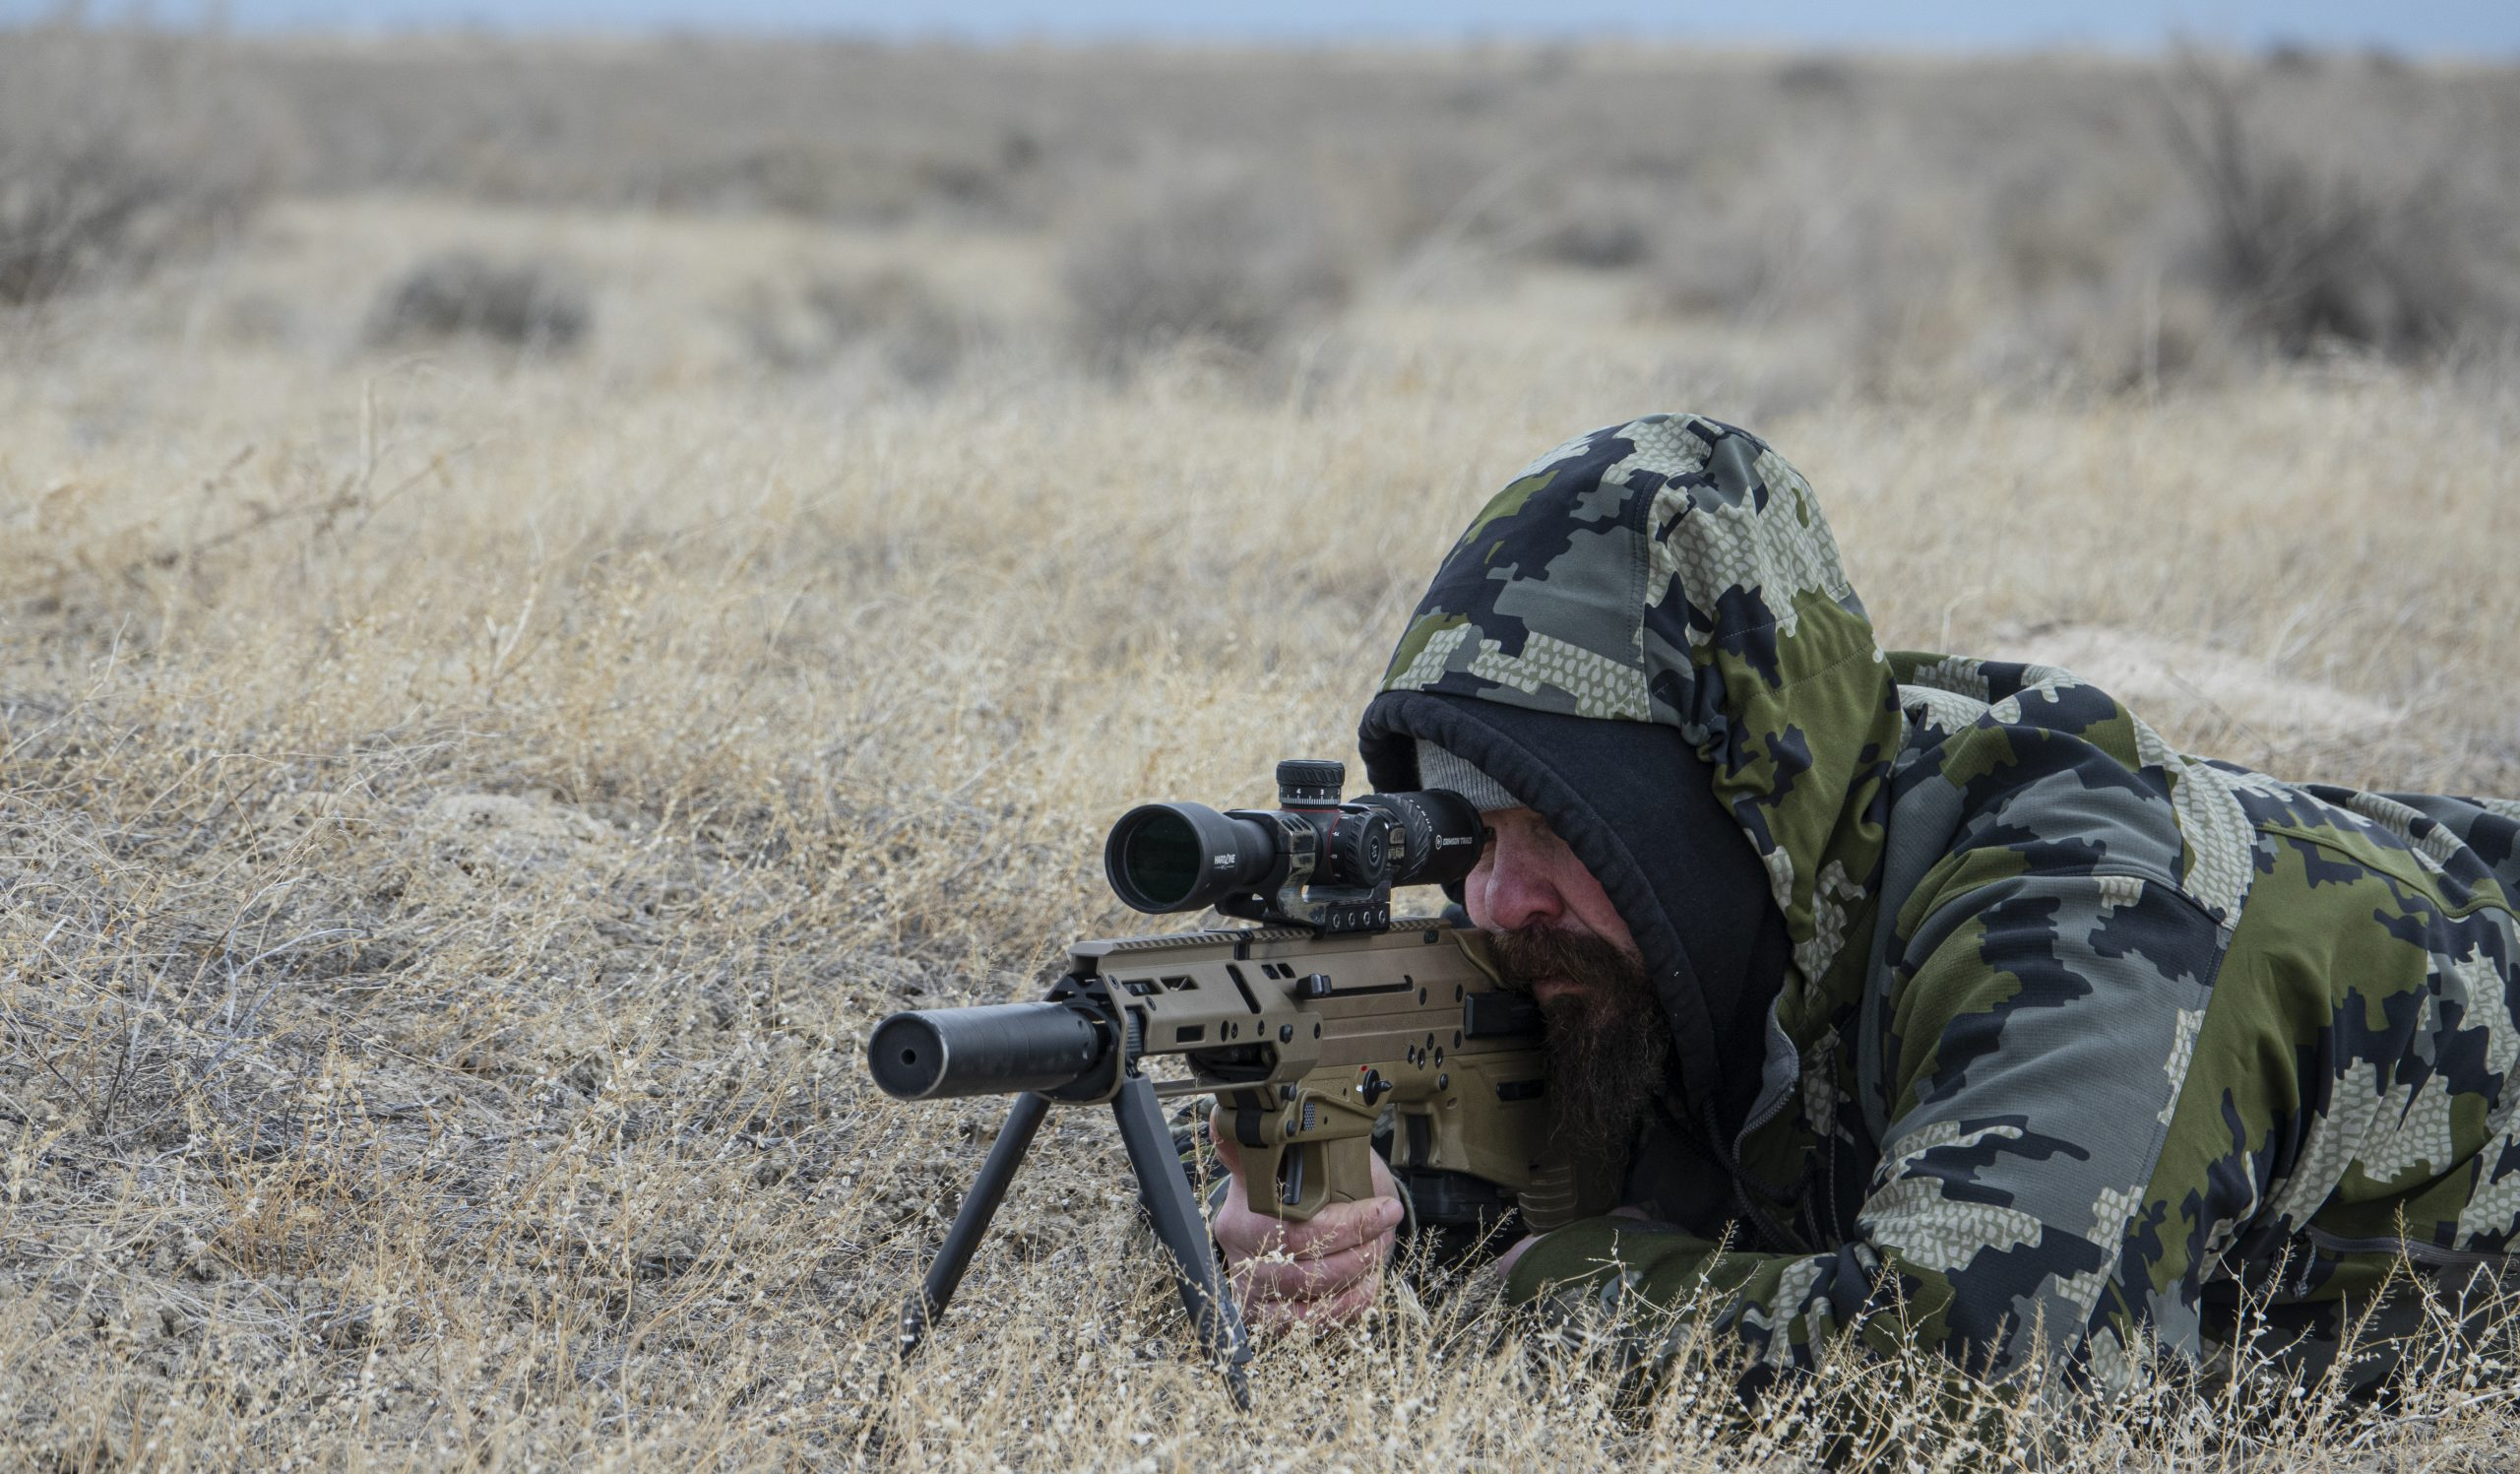 Is the MDRX a long range rifle?